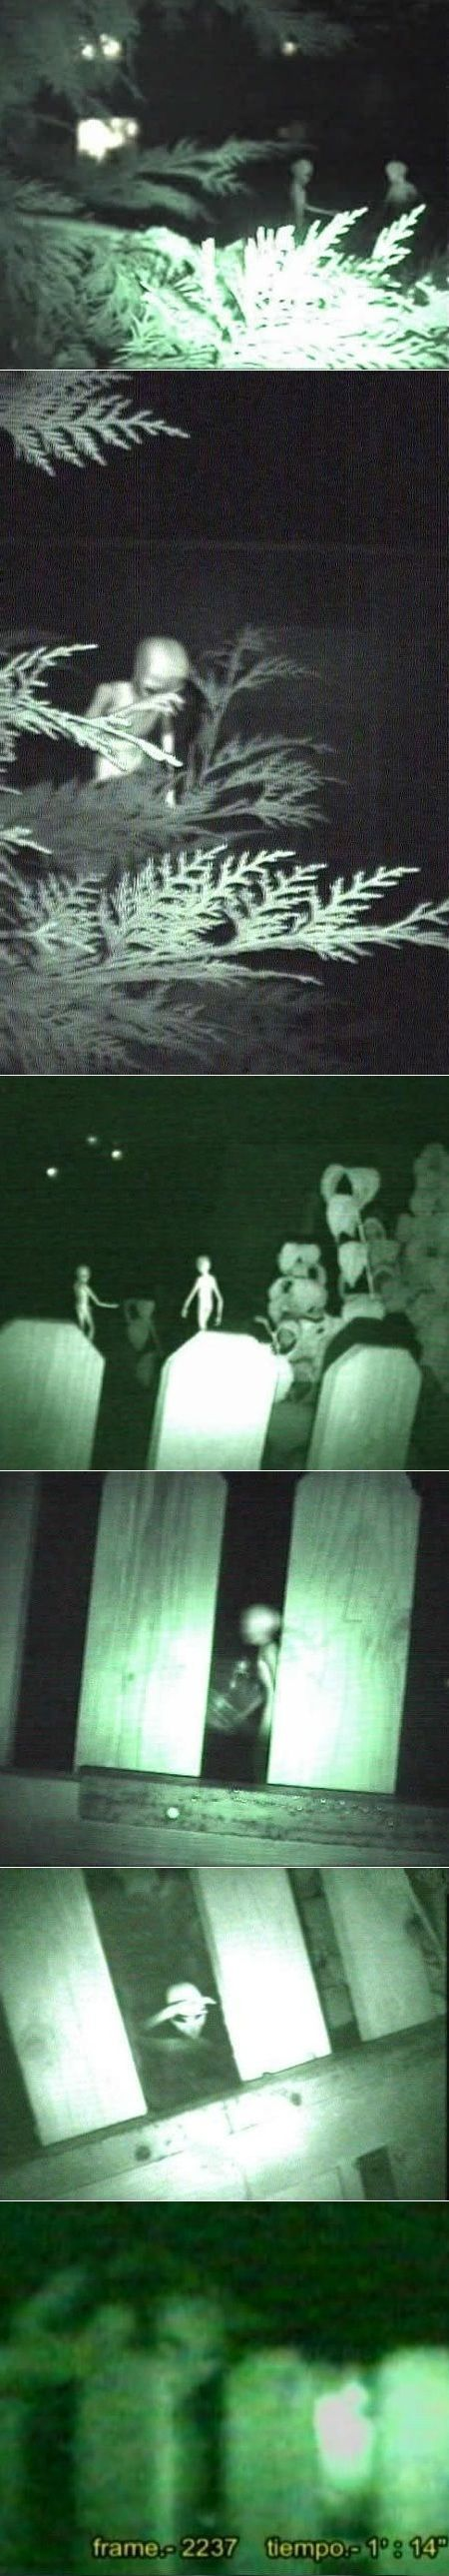 """1999 London - """"Mr. Unknown sped back into the house and grabbed his video camera. He was hoping to film the UFO before it disappeared, but instead he filmed what he claimed to be a type of small, ghost-like beings who seemed to be rummaging around behind his fence. The total length of the film was about four (4) minutes. The strange beings made a sound which was barely audible, and somewhat muffled. The sounds of the small beings had attracted him to the area. Mr Unknown was frank in…"""